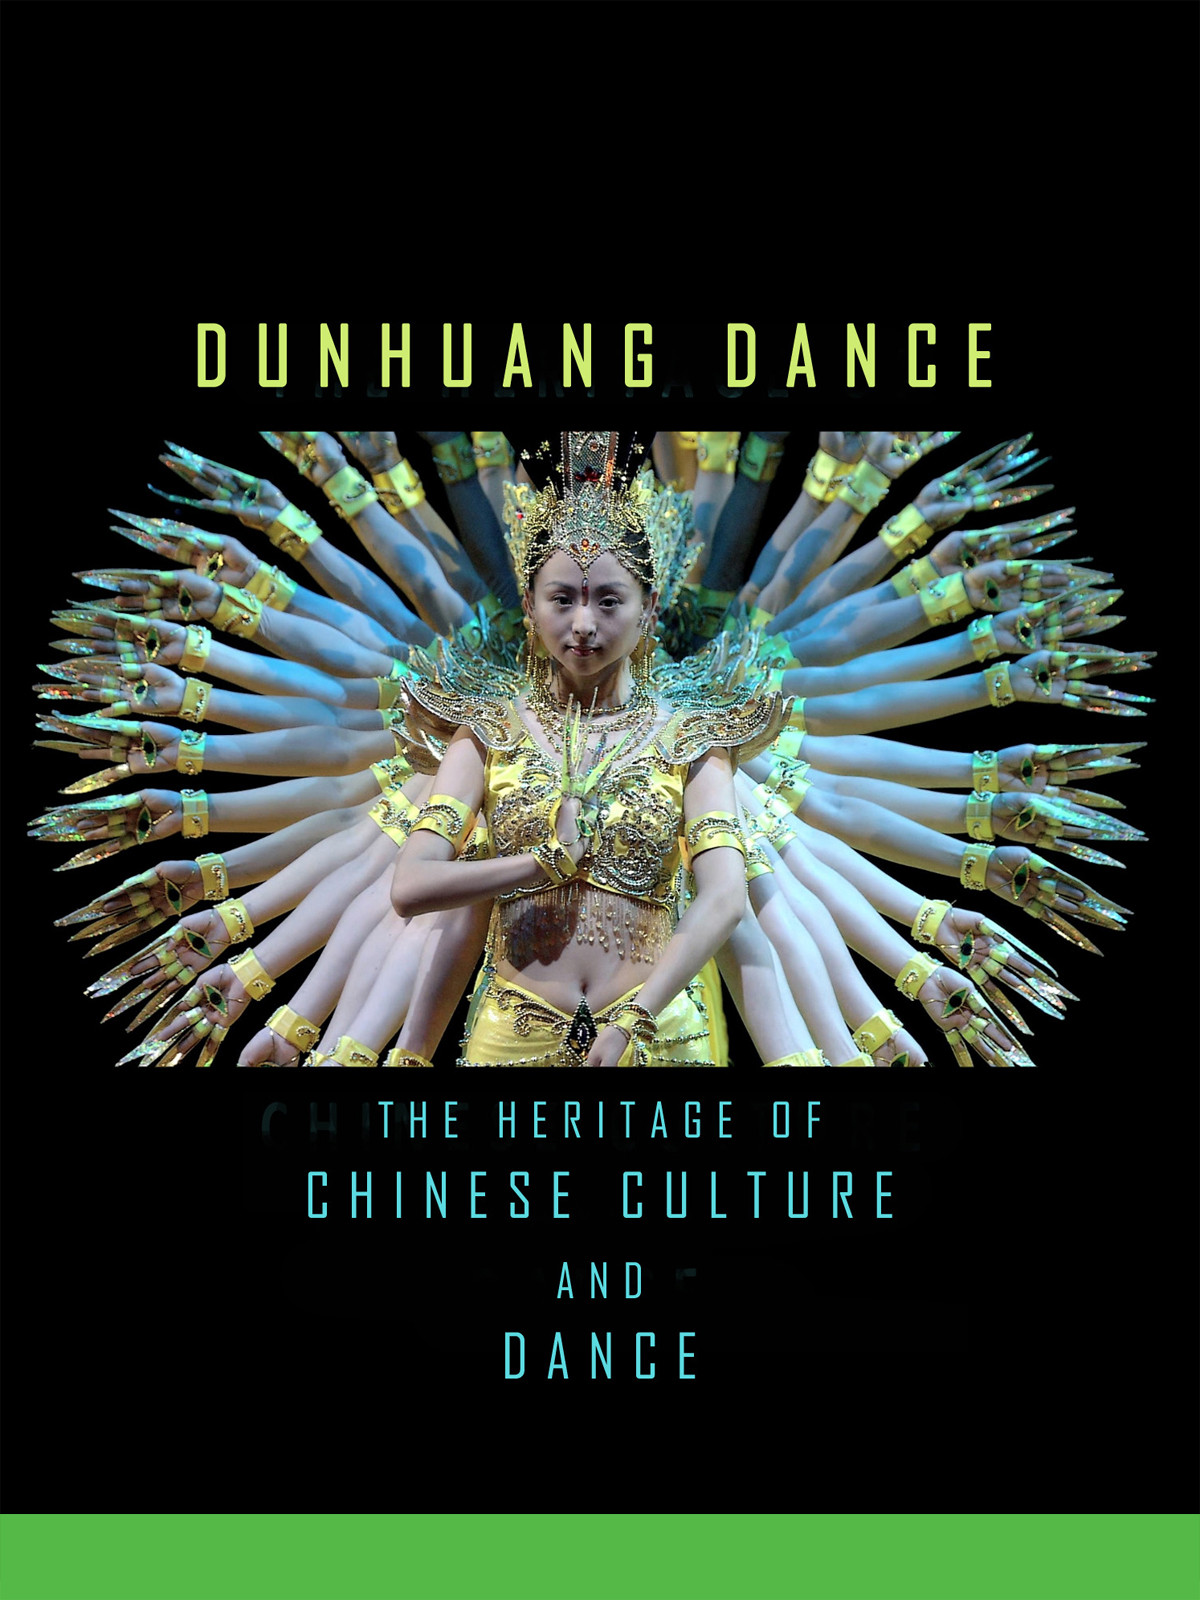 T8921 - The Heritage of Chinese Culture and Dance Classical Dance-Dunhuang